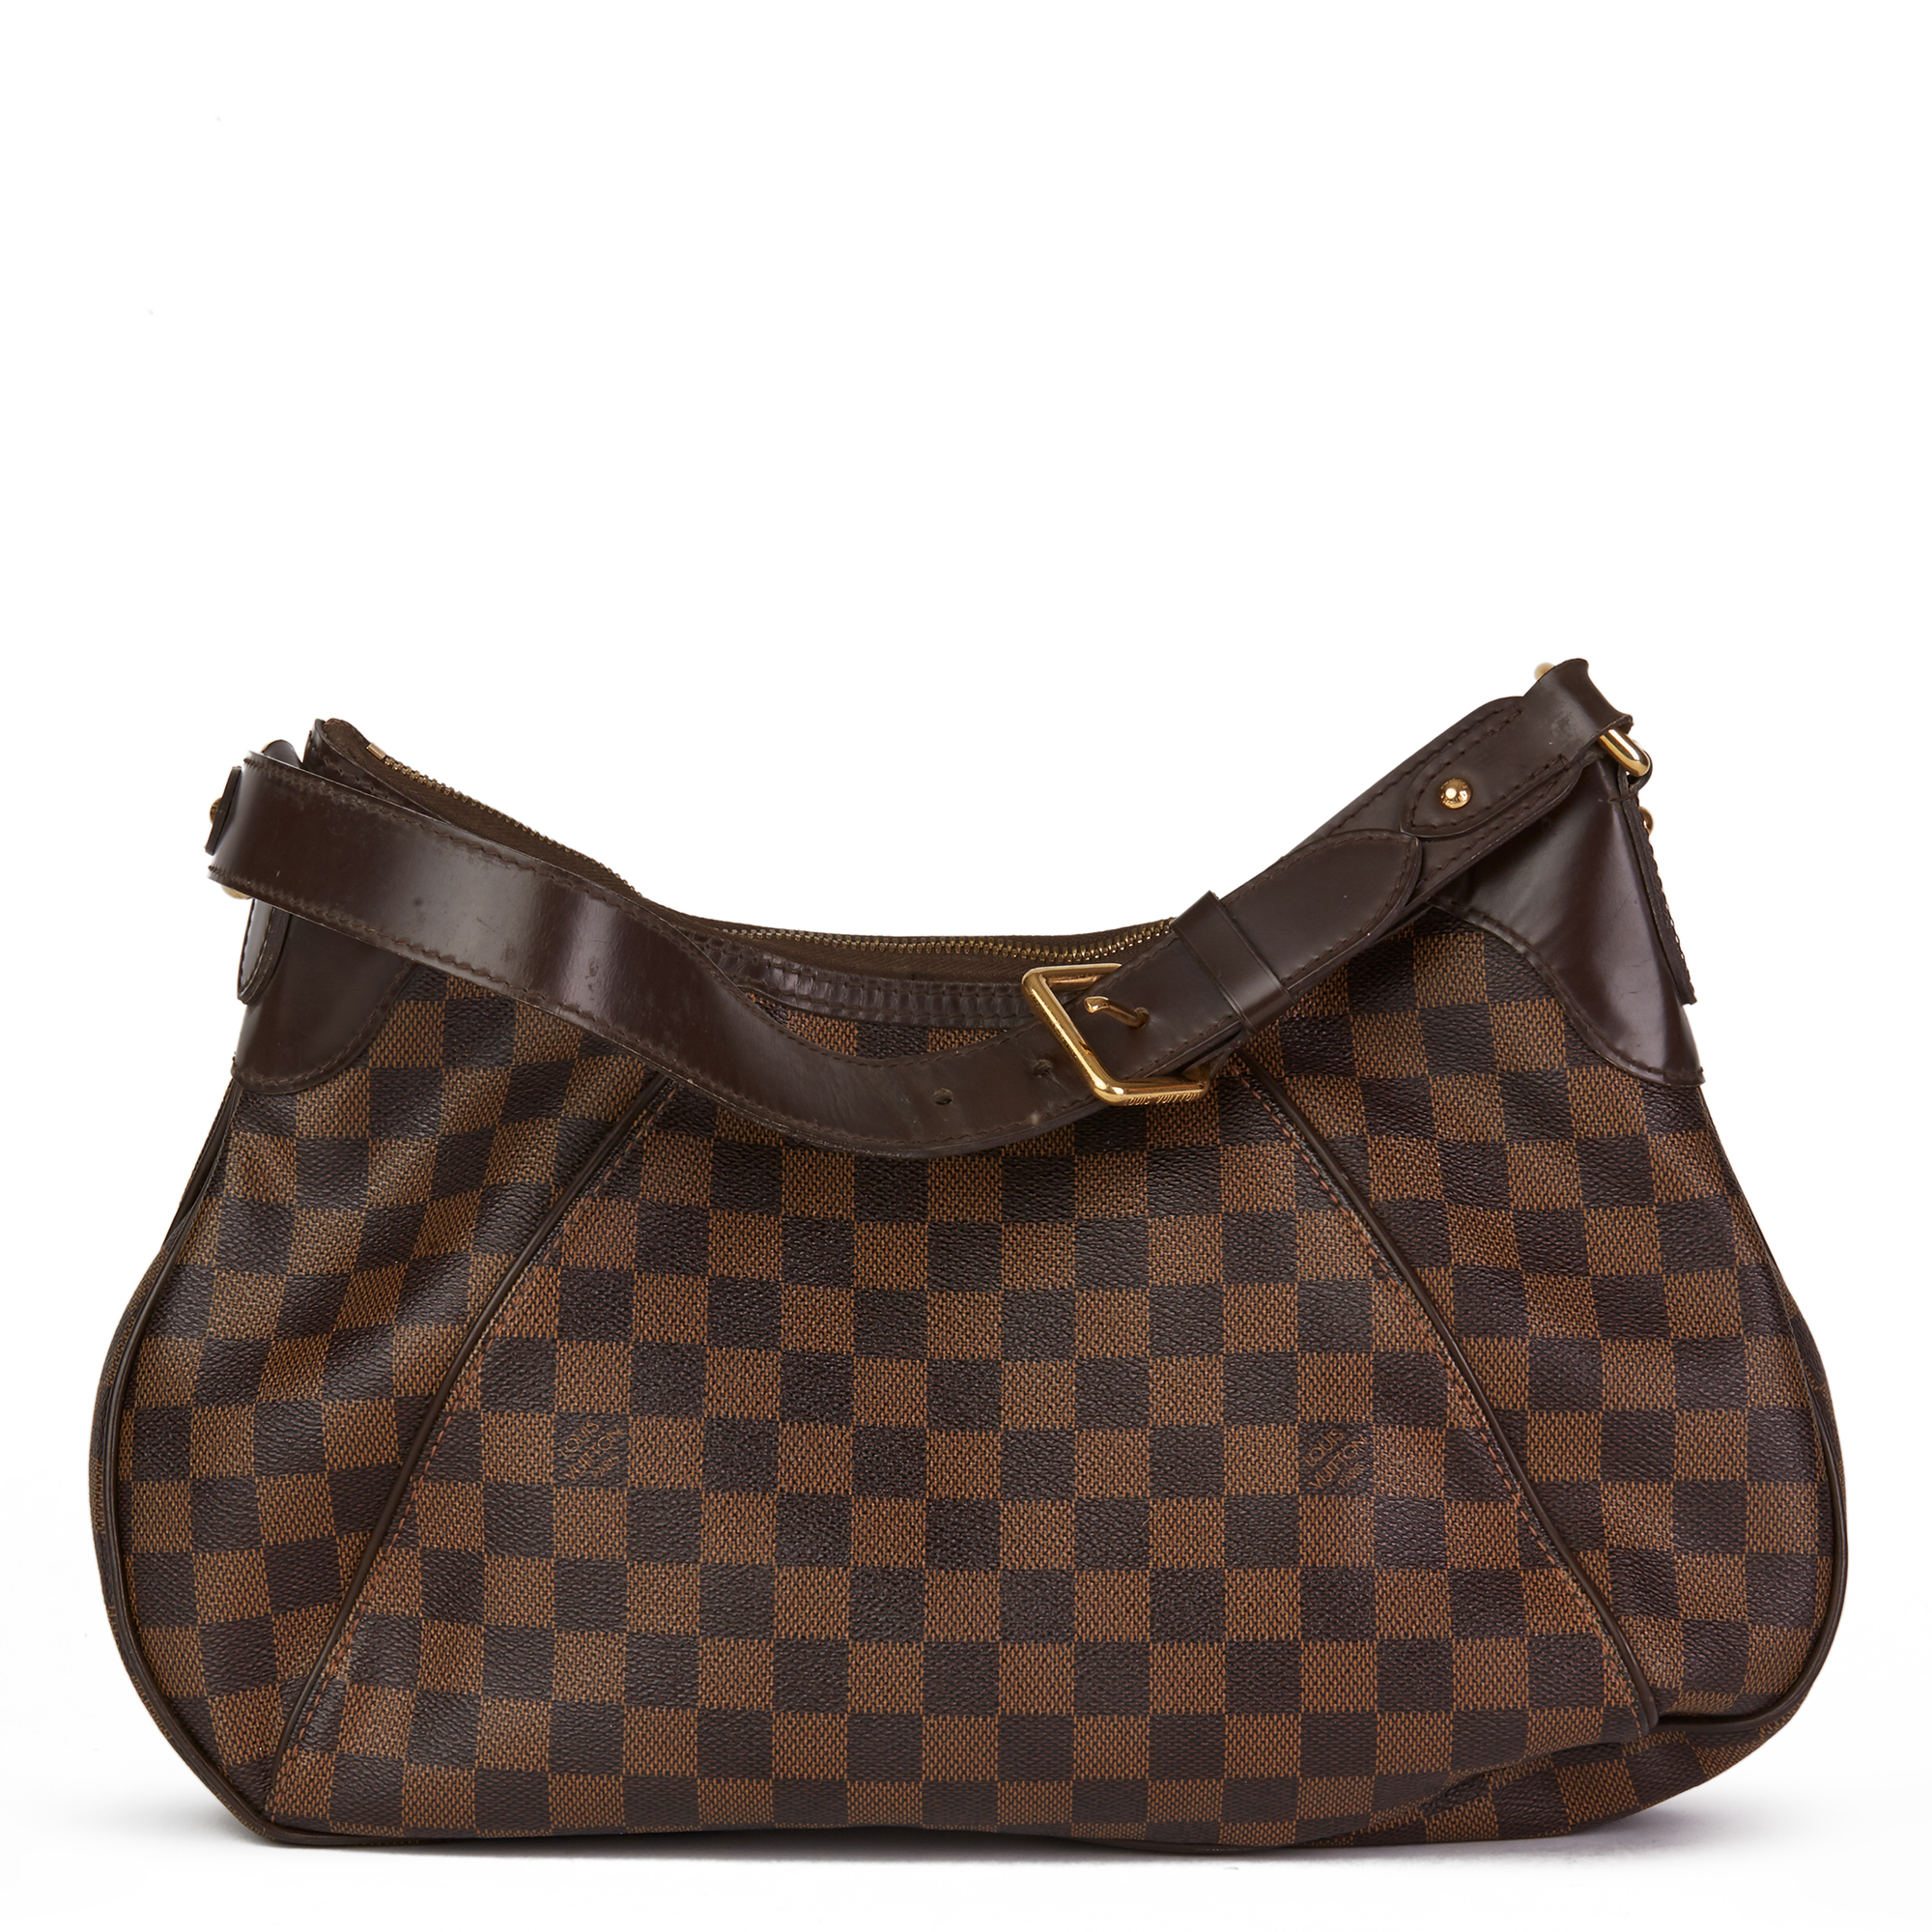 Louis Vuitton Brown Damier Ebene Monogram Coated Canvas Thames PM - Image 8 of 10